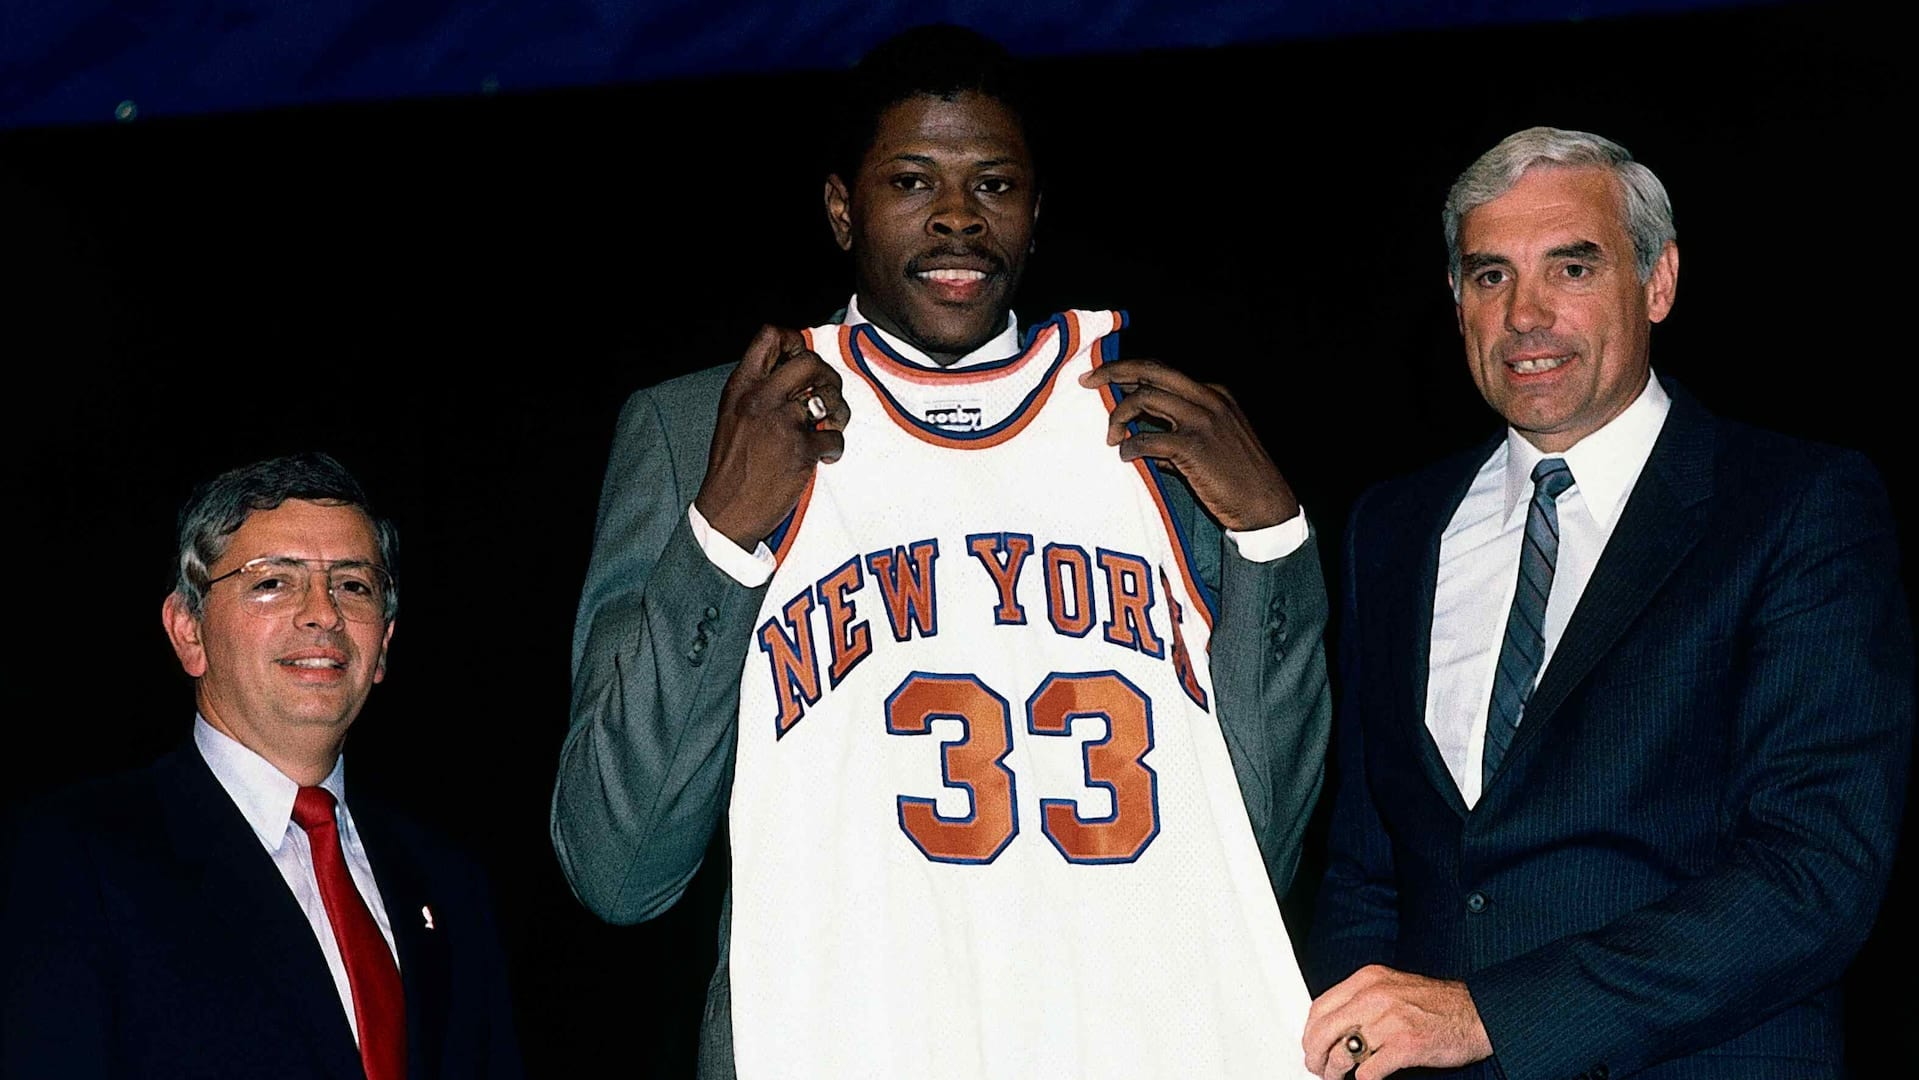 Patrick Ewing's Dream Team Olympic Gold Medal and NCAA Title Ring Stolen